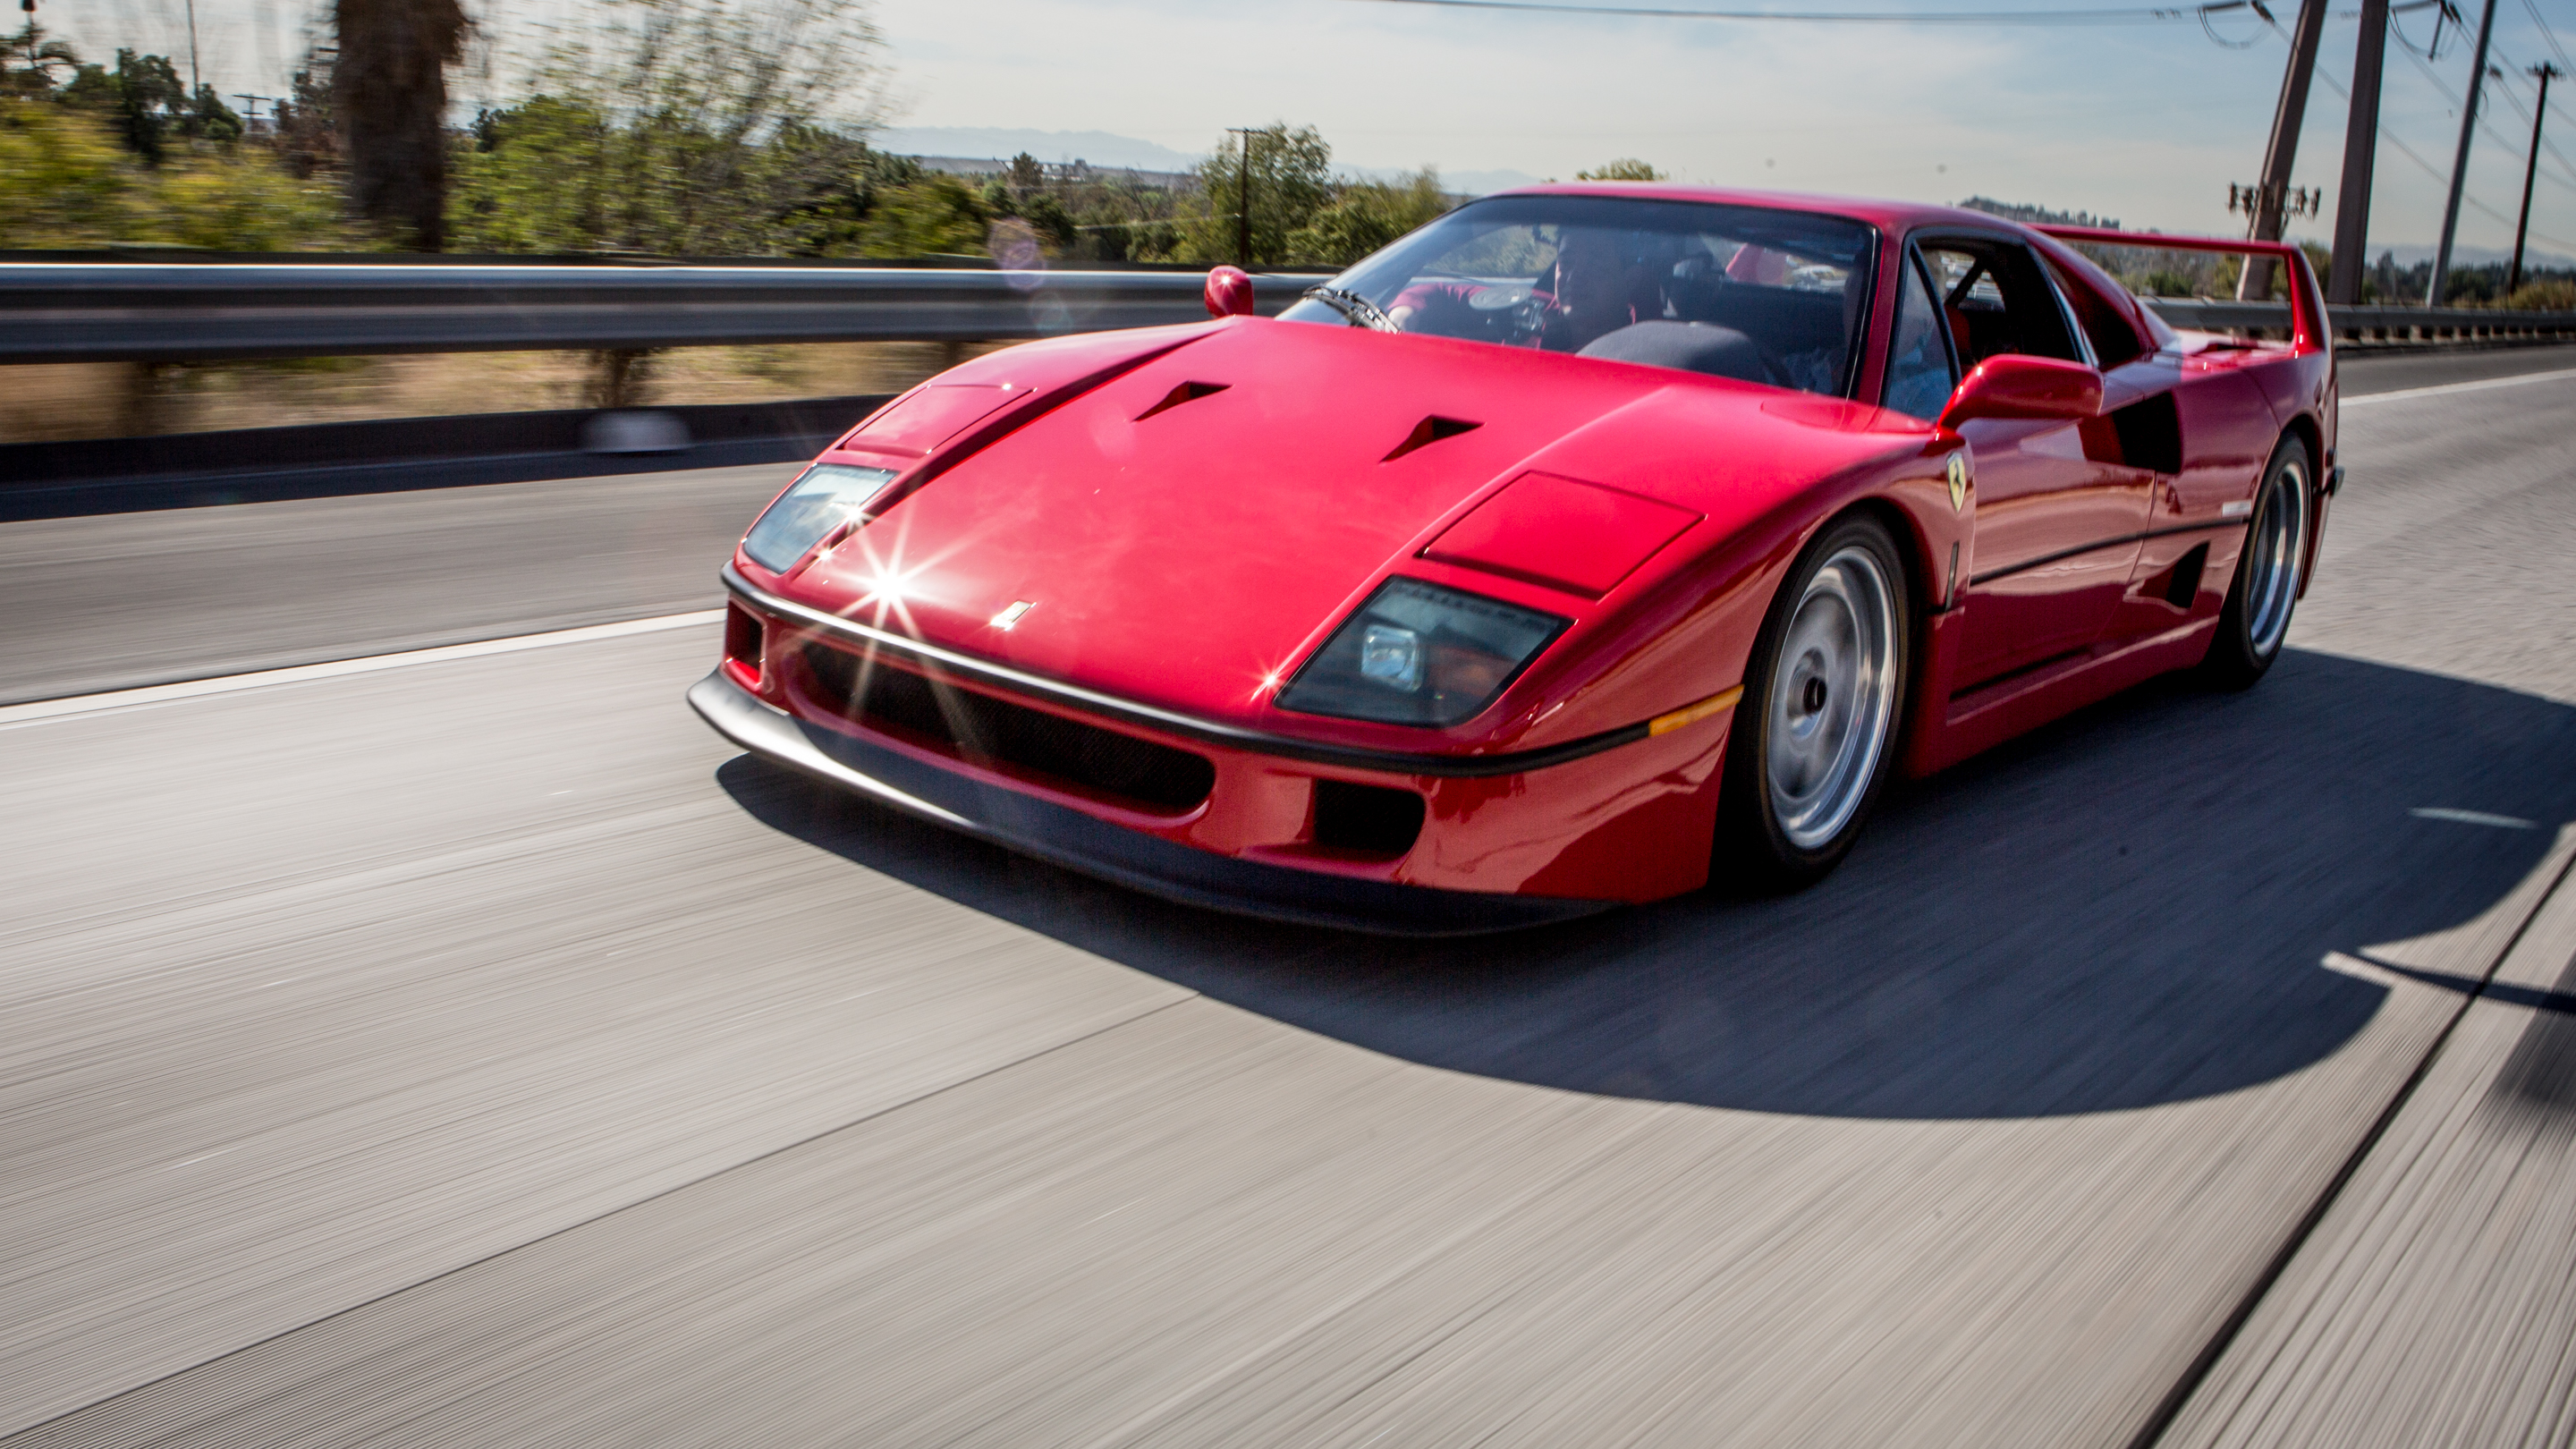 watch jay leno's garage web exclusive: 1990 ferrari f40 - nbc